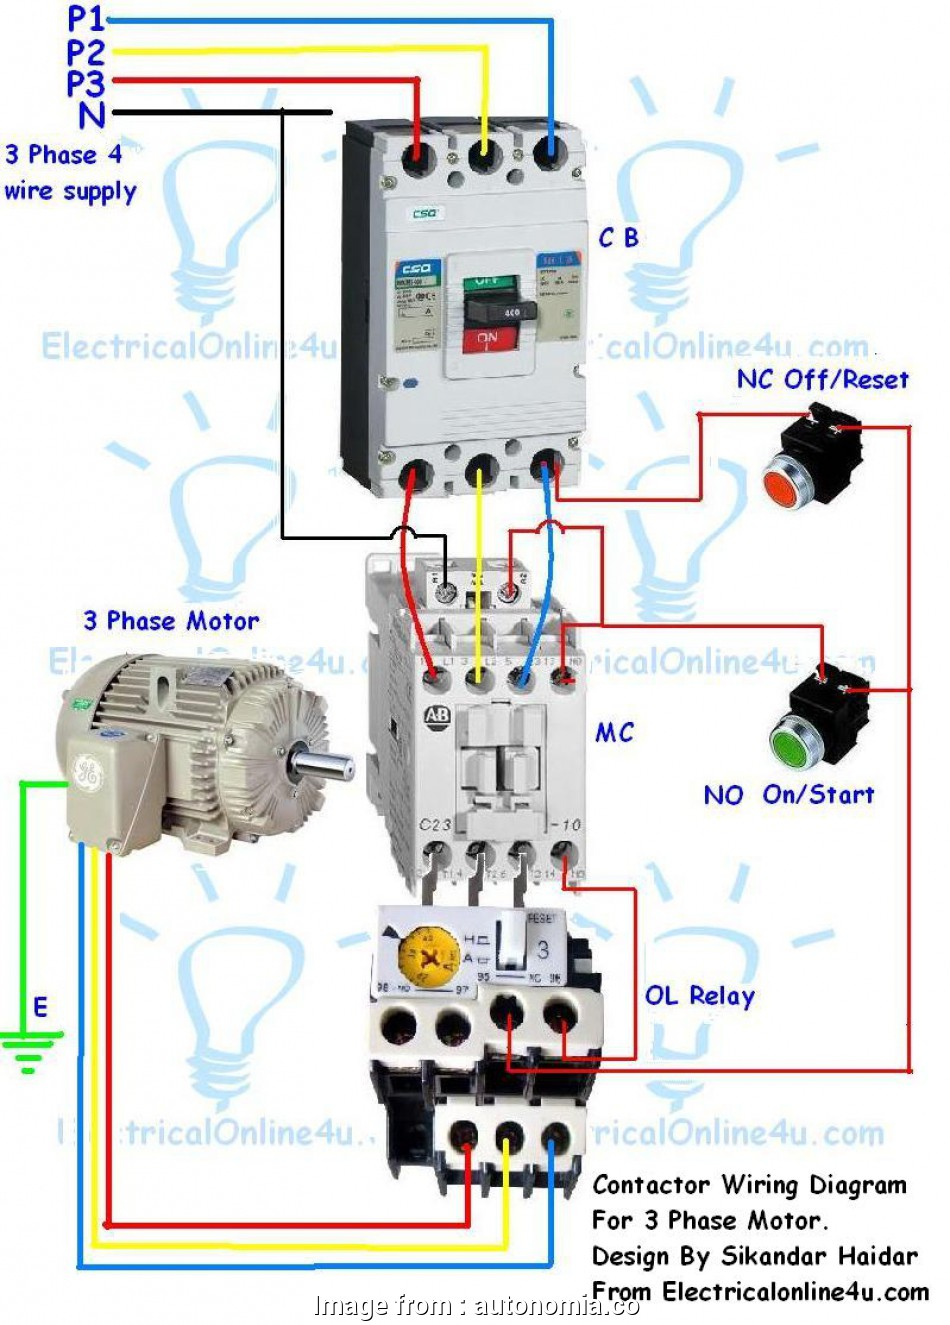 l&t starter wiring diagram contactor wiring guide, 3 phase motor with circuit  motor starter wiring